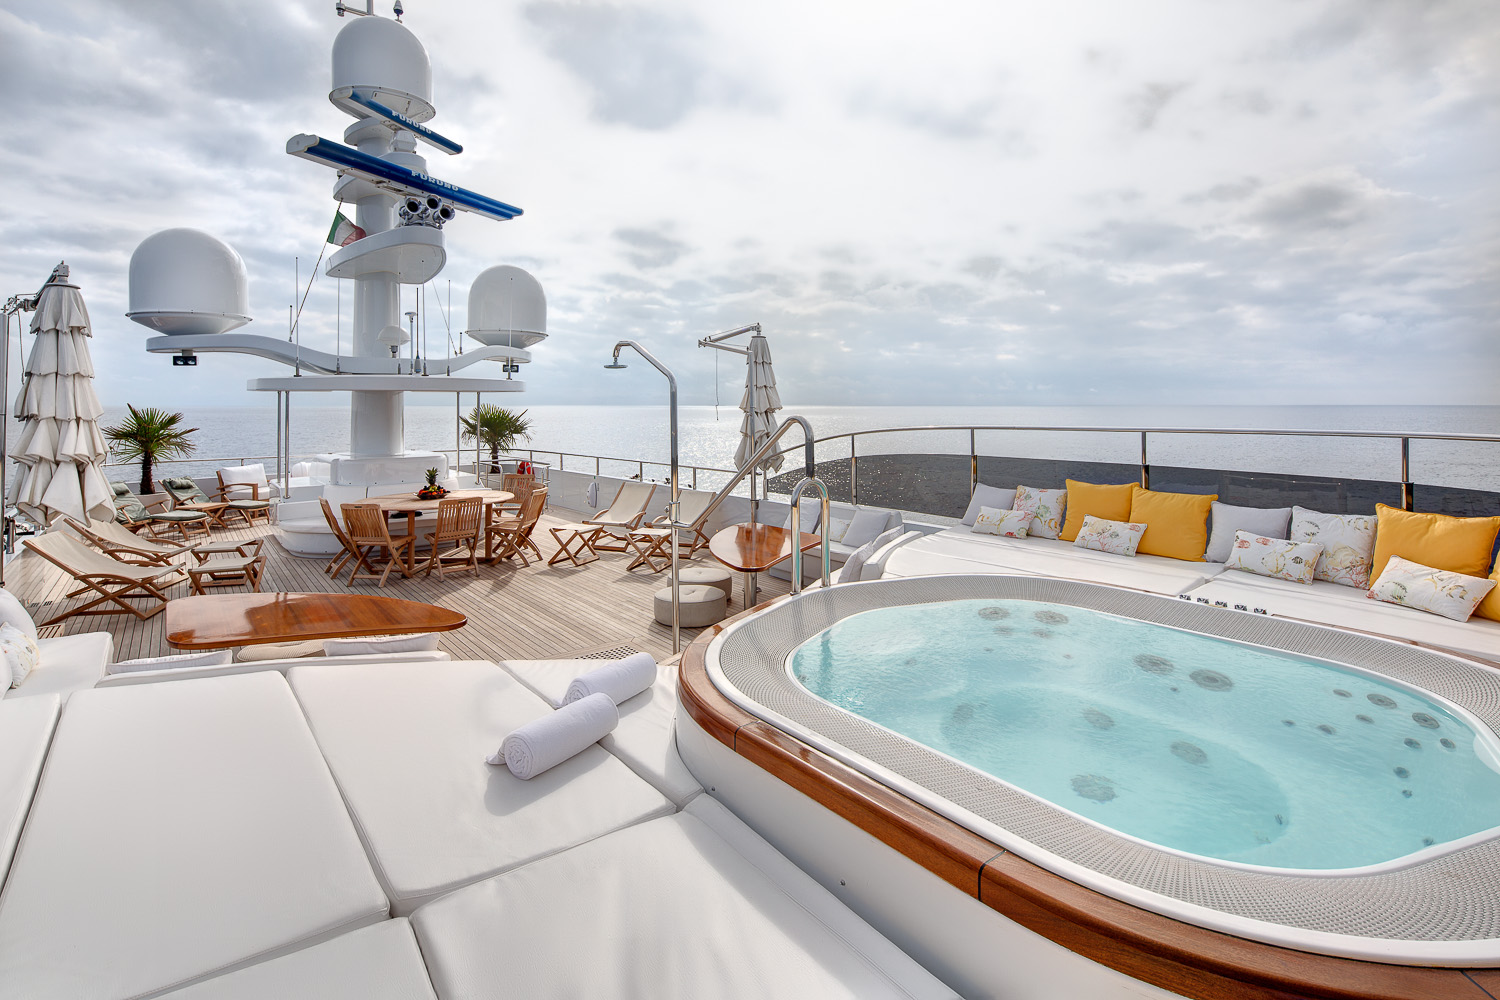 Sun deck with Jacuzzi and seating to relax